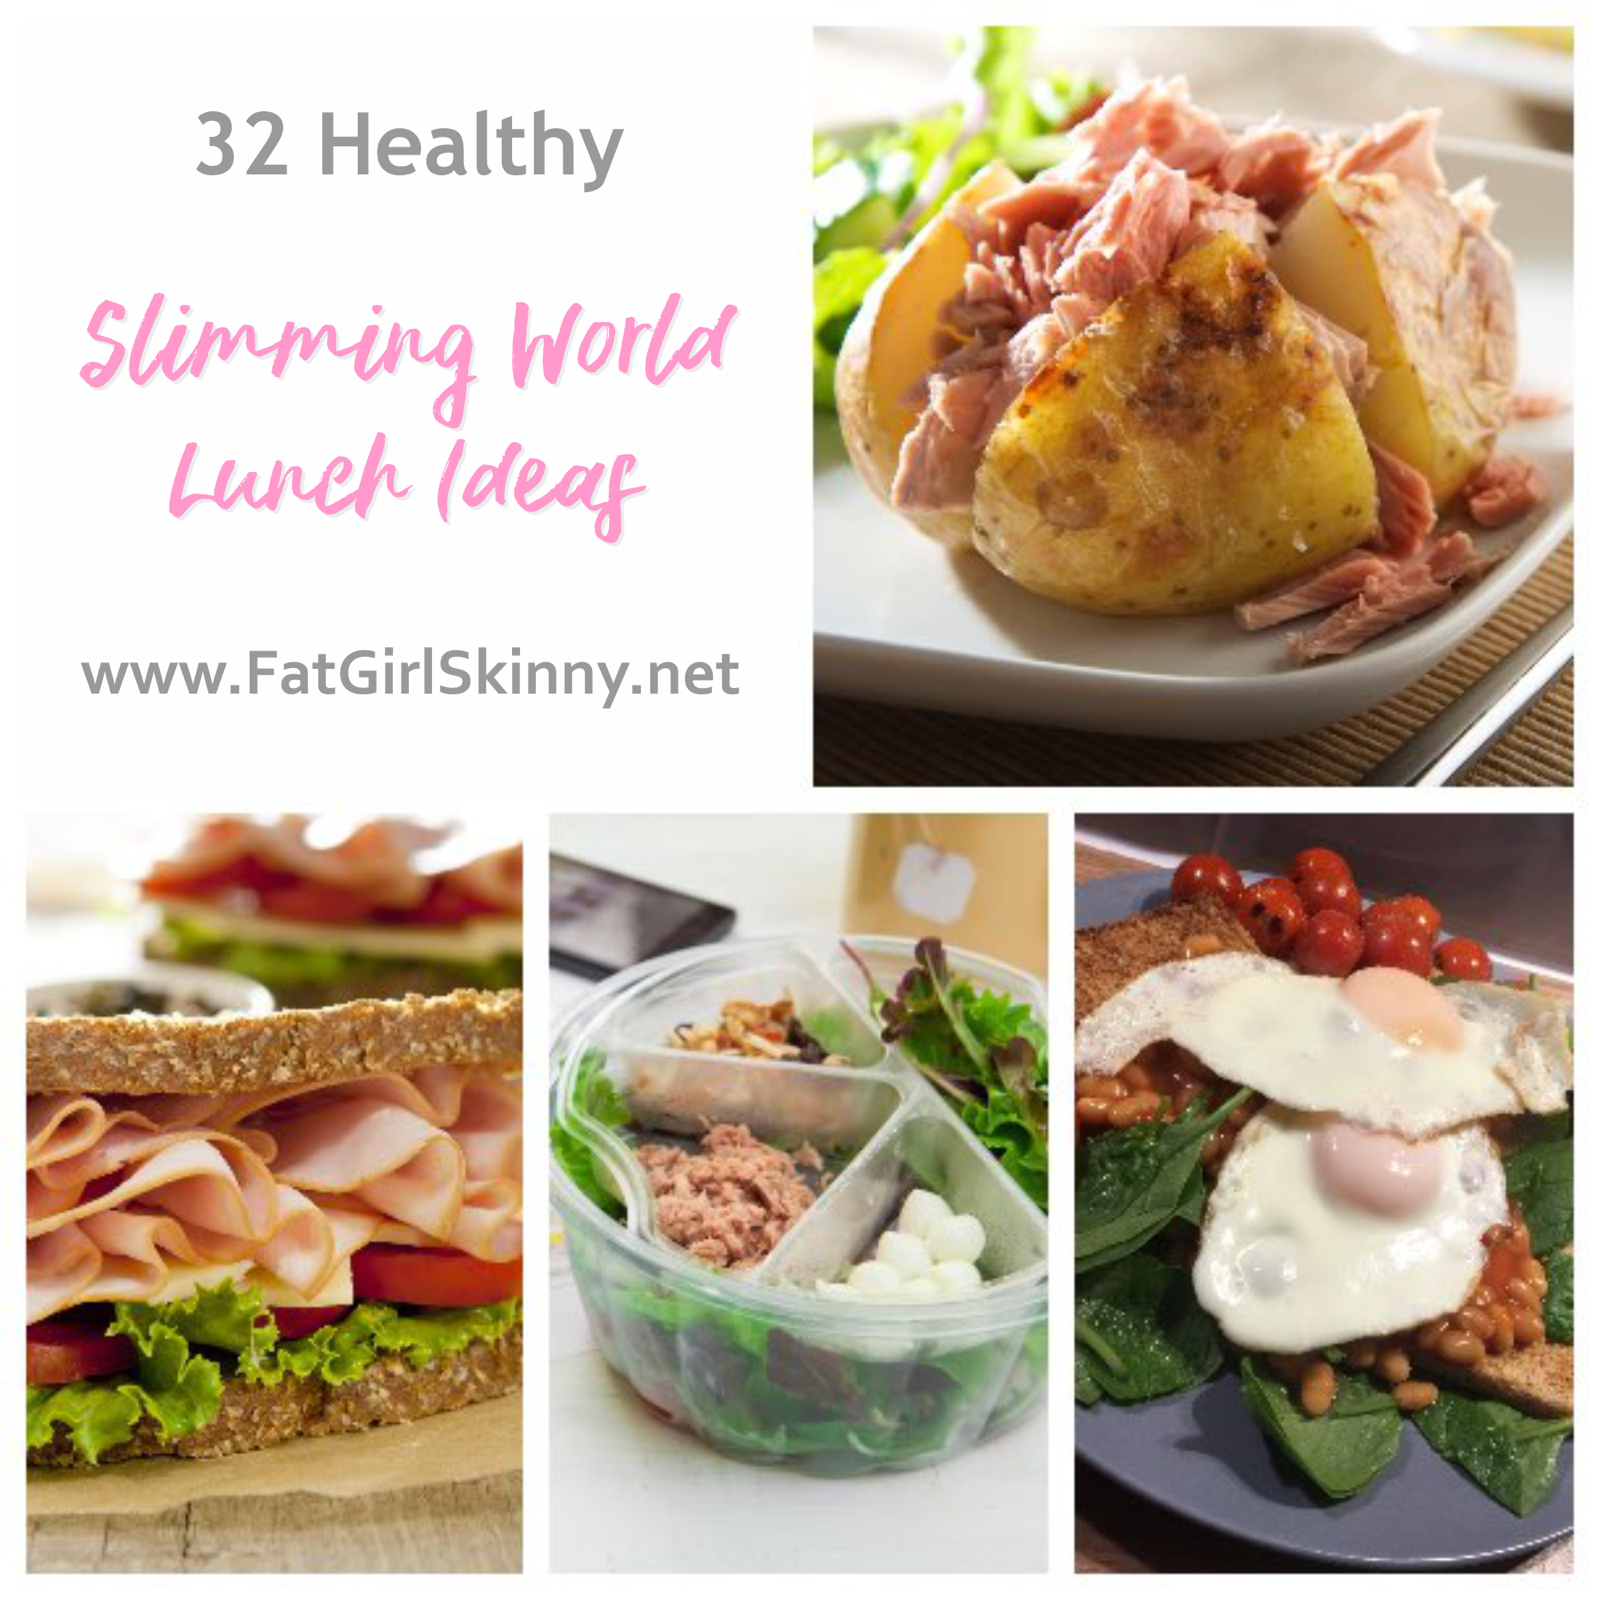 32 Healthy Slimming World Lunch Ideas